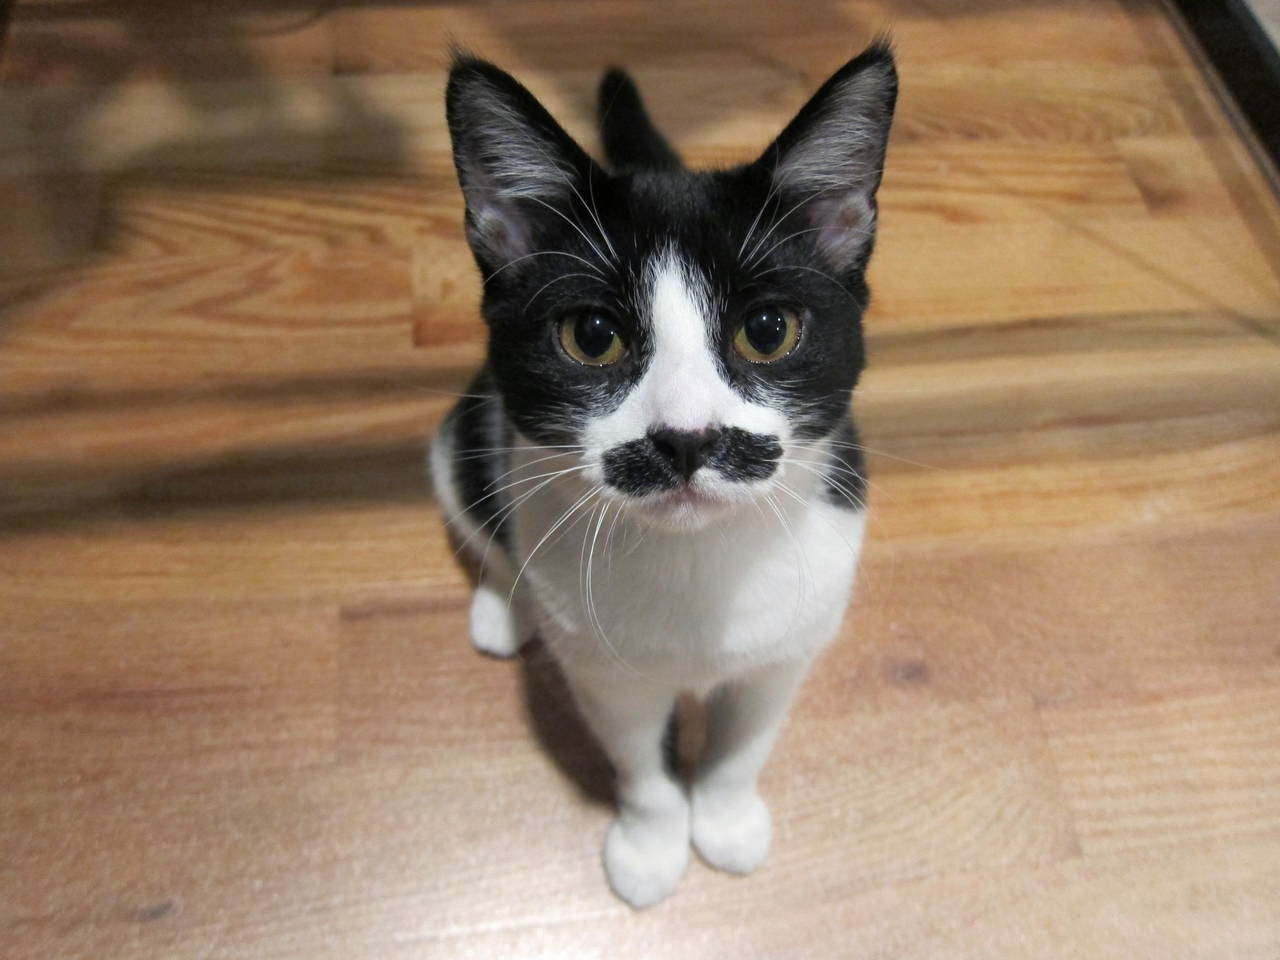 Funny cats - part 97 (40 pics + 10 gifs), cat pictures, kitten with mustache